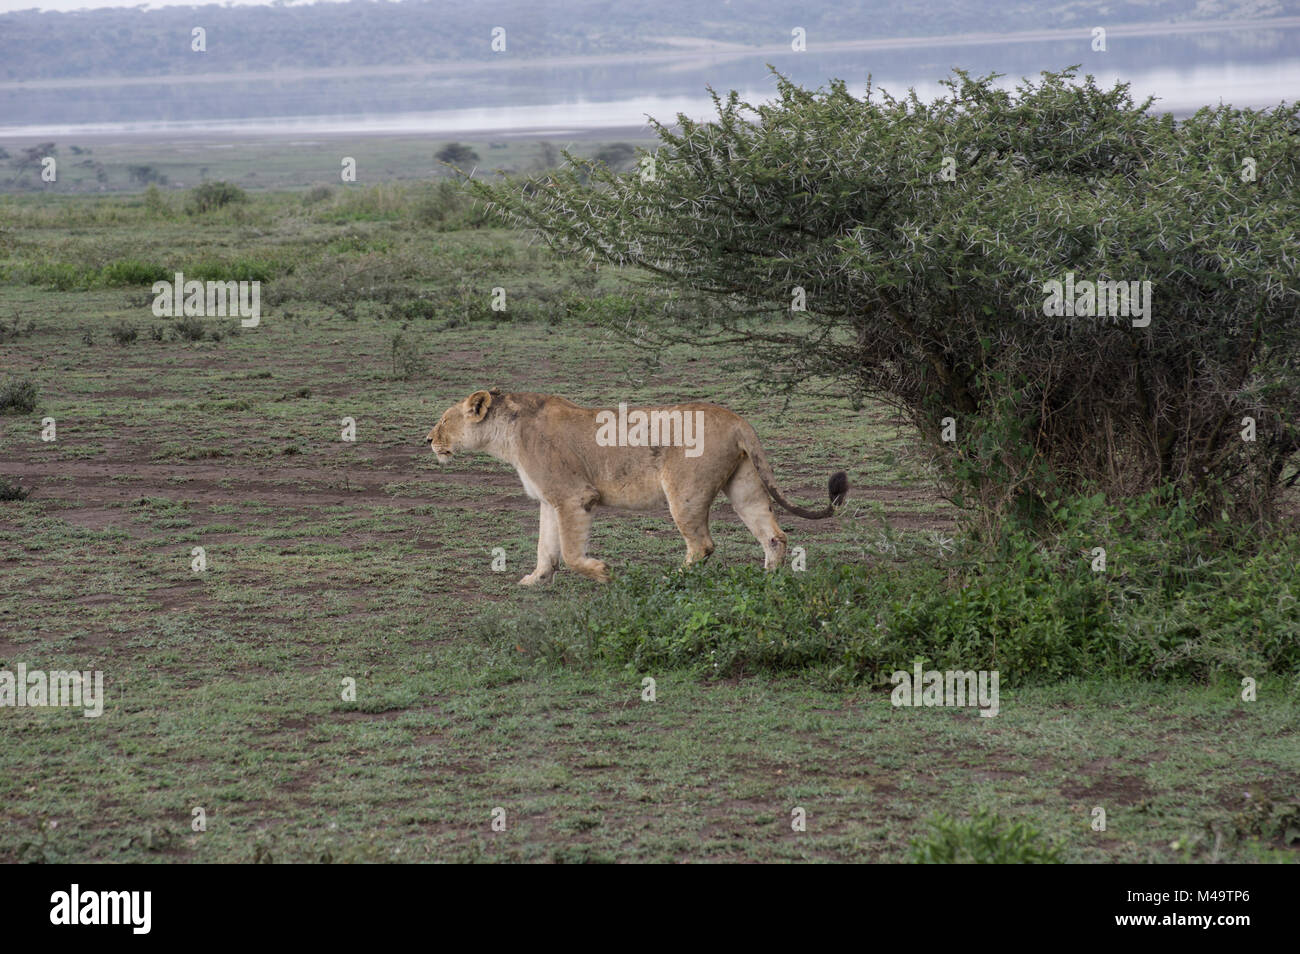 Female lioness walking in the dry grass near the banks of Lake Manyara in the national park in Northern Tanzania - Stock Image